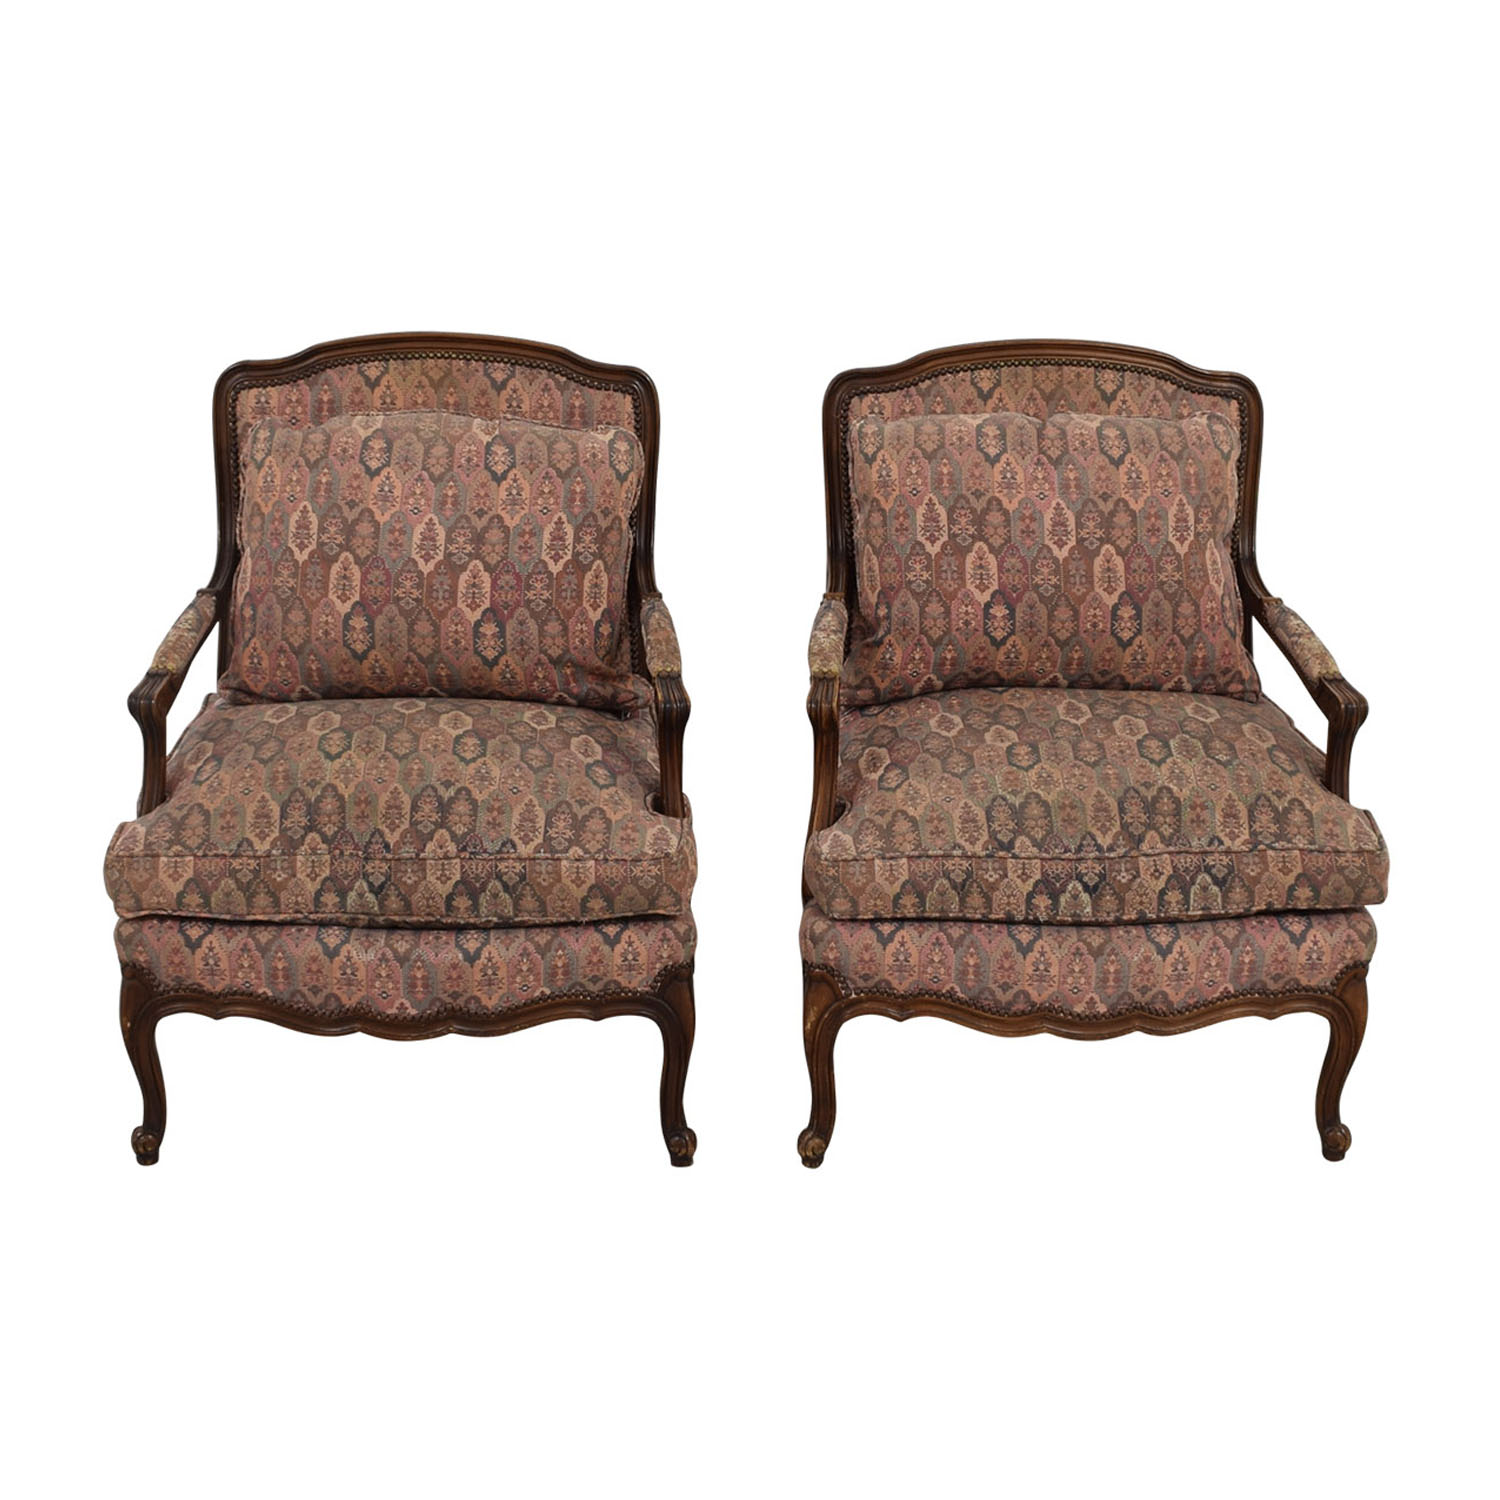 TRS Furniture Low Wing Back Arm Chairs sale